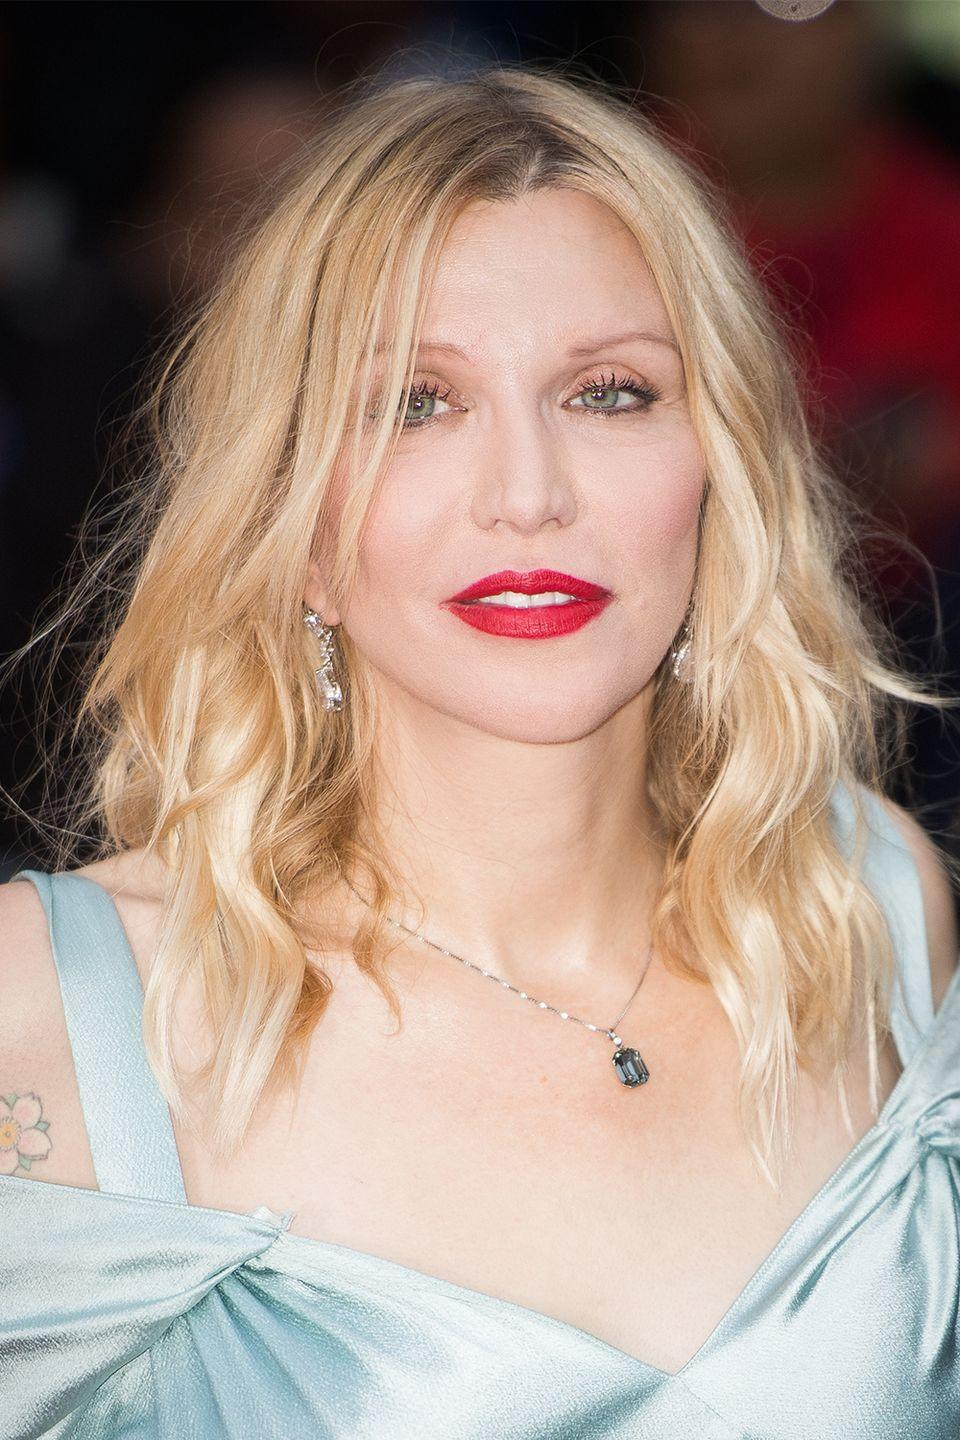 """<p>Love decided to <a href=""""https://www.youtube.com/watch?v=8Zlijf15YAE"""" rel=""""nofollow noopener"""" target=""""_blank"""" data-ylk=""""slk:interrupt Madonna's MTV VMA's interview"""" class=""""link rapid-noclick-resp"""">interrupt Madonna's MTV VMA's interview</a> by throwing her makeup compact at her. Interviewer Kurt Loder invites Love on stage, even though Madonna says, """"No, don't."""" It all goes downhill from there—like when Love says Madonna is mean to her or that she wants to quit music and be a candy striper.</p>"""